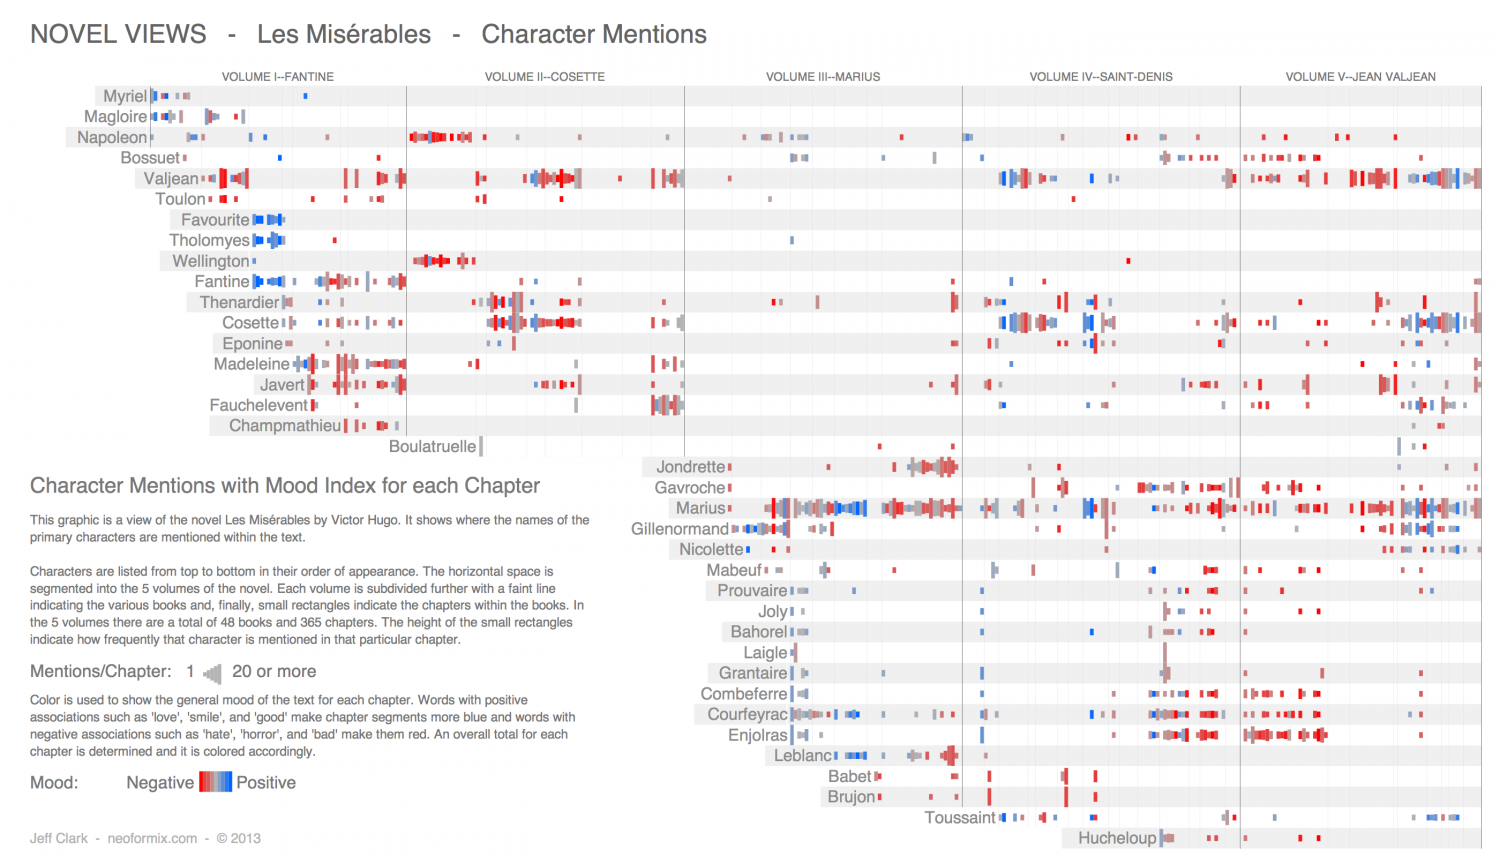 Les Miserables - Character Mentions Infographic